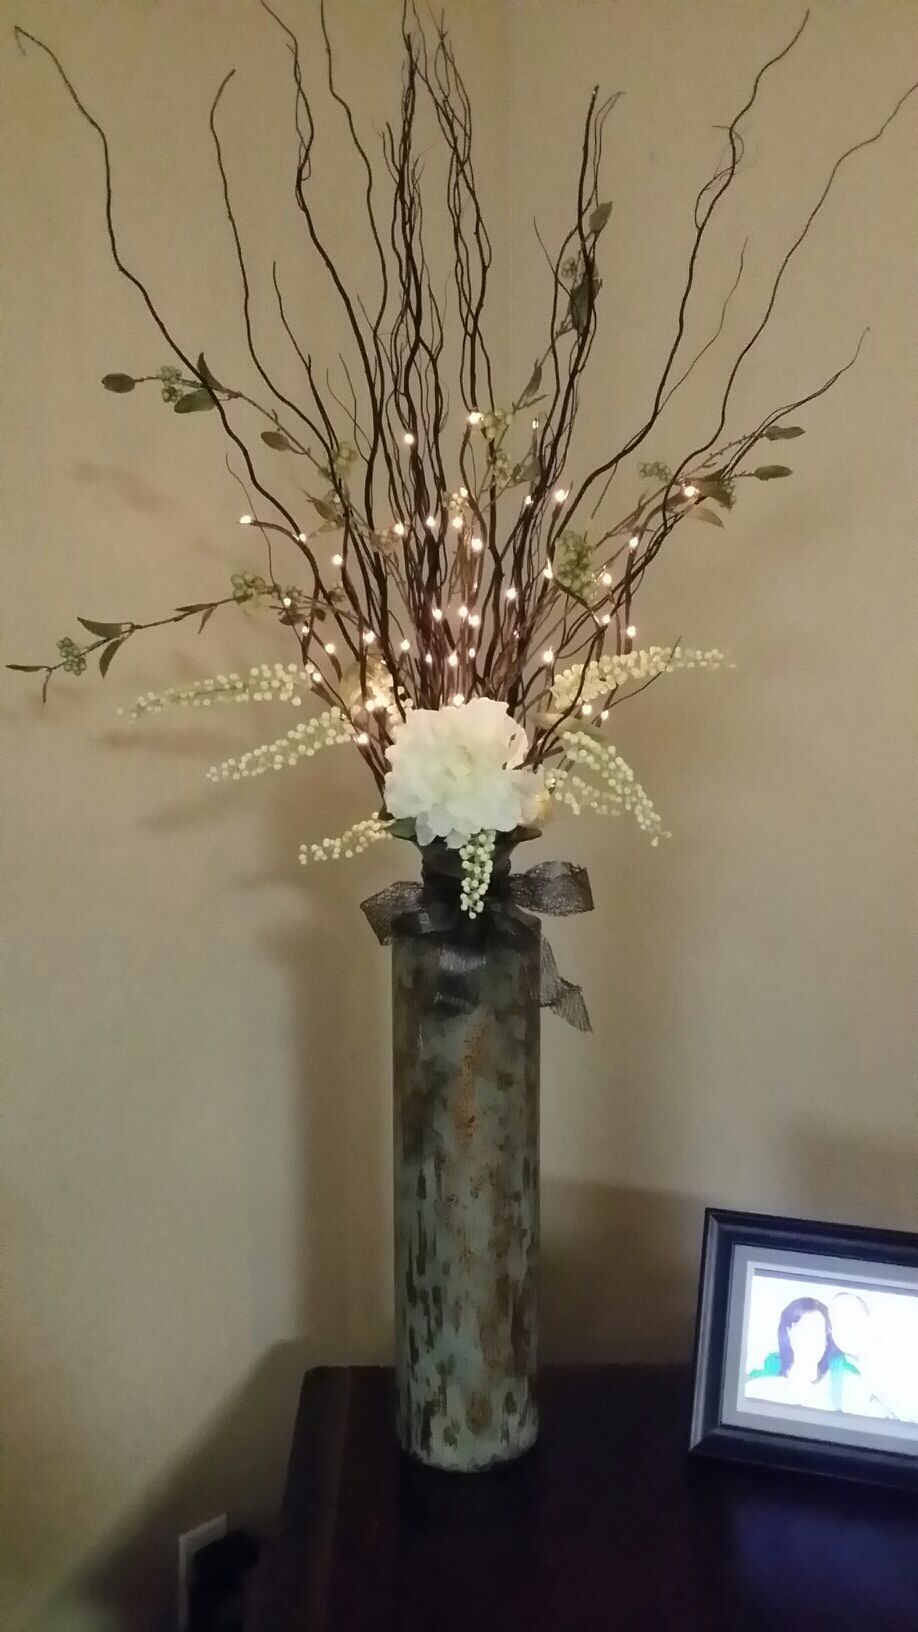 Pin By Veronica B On My Creations Tall Vase Decor Tall Floor Vases Floor Vase Decor